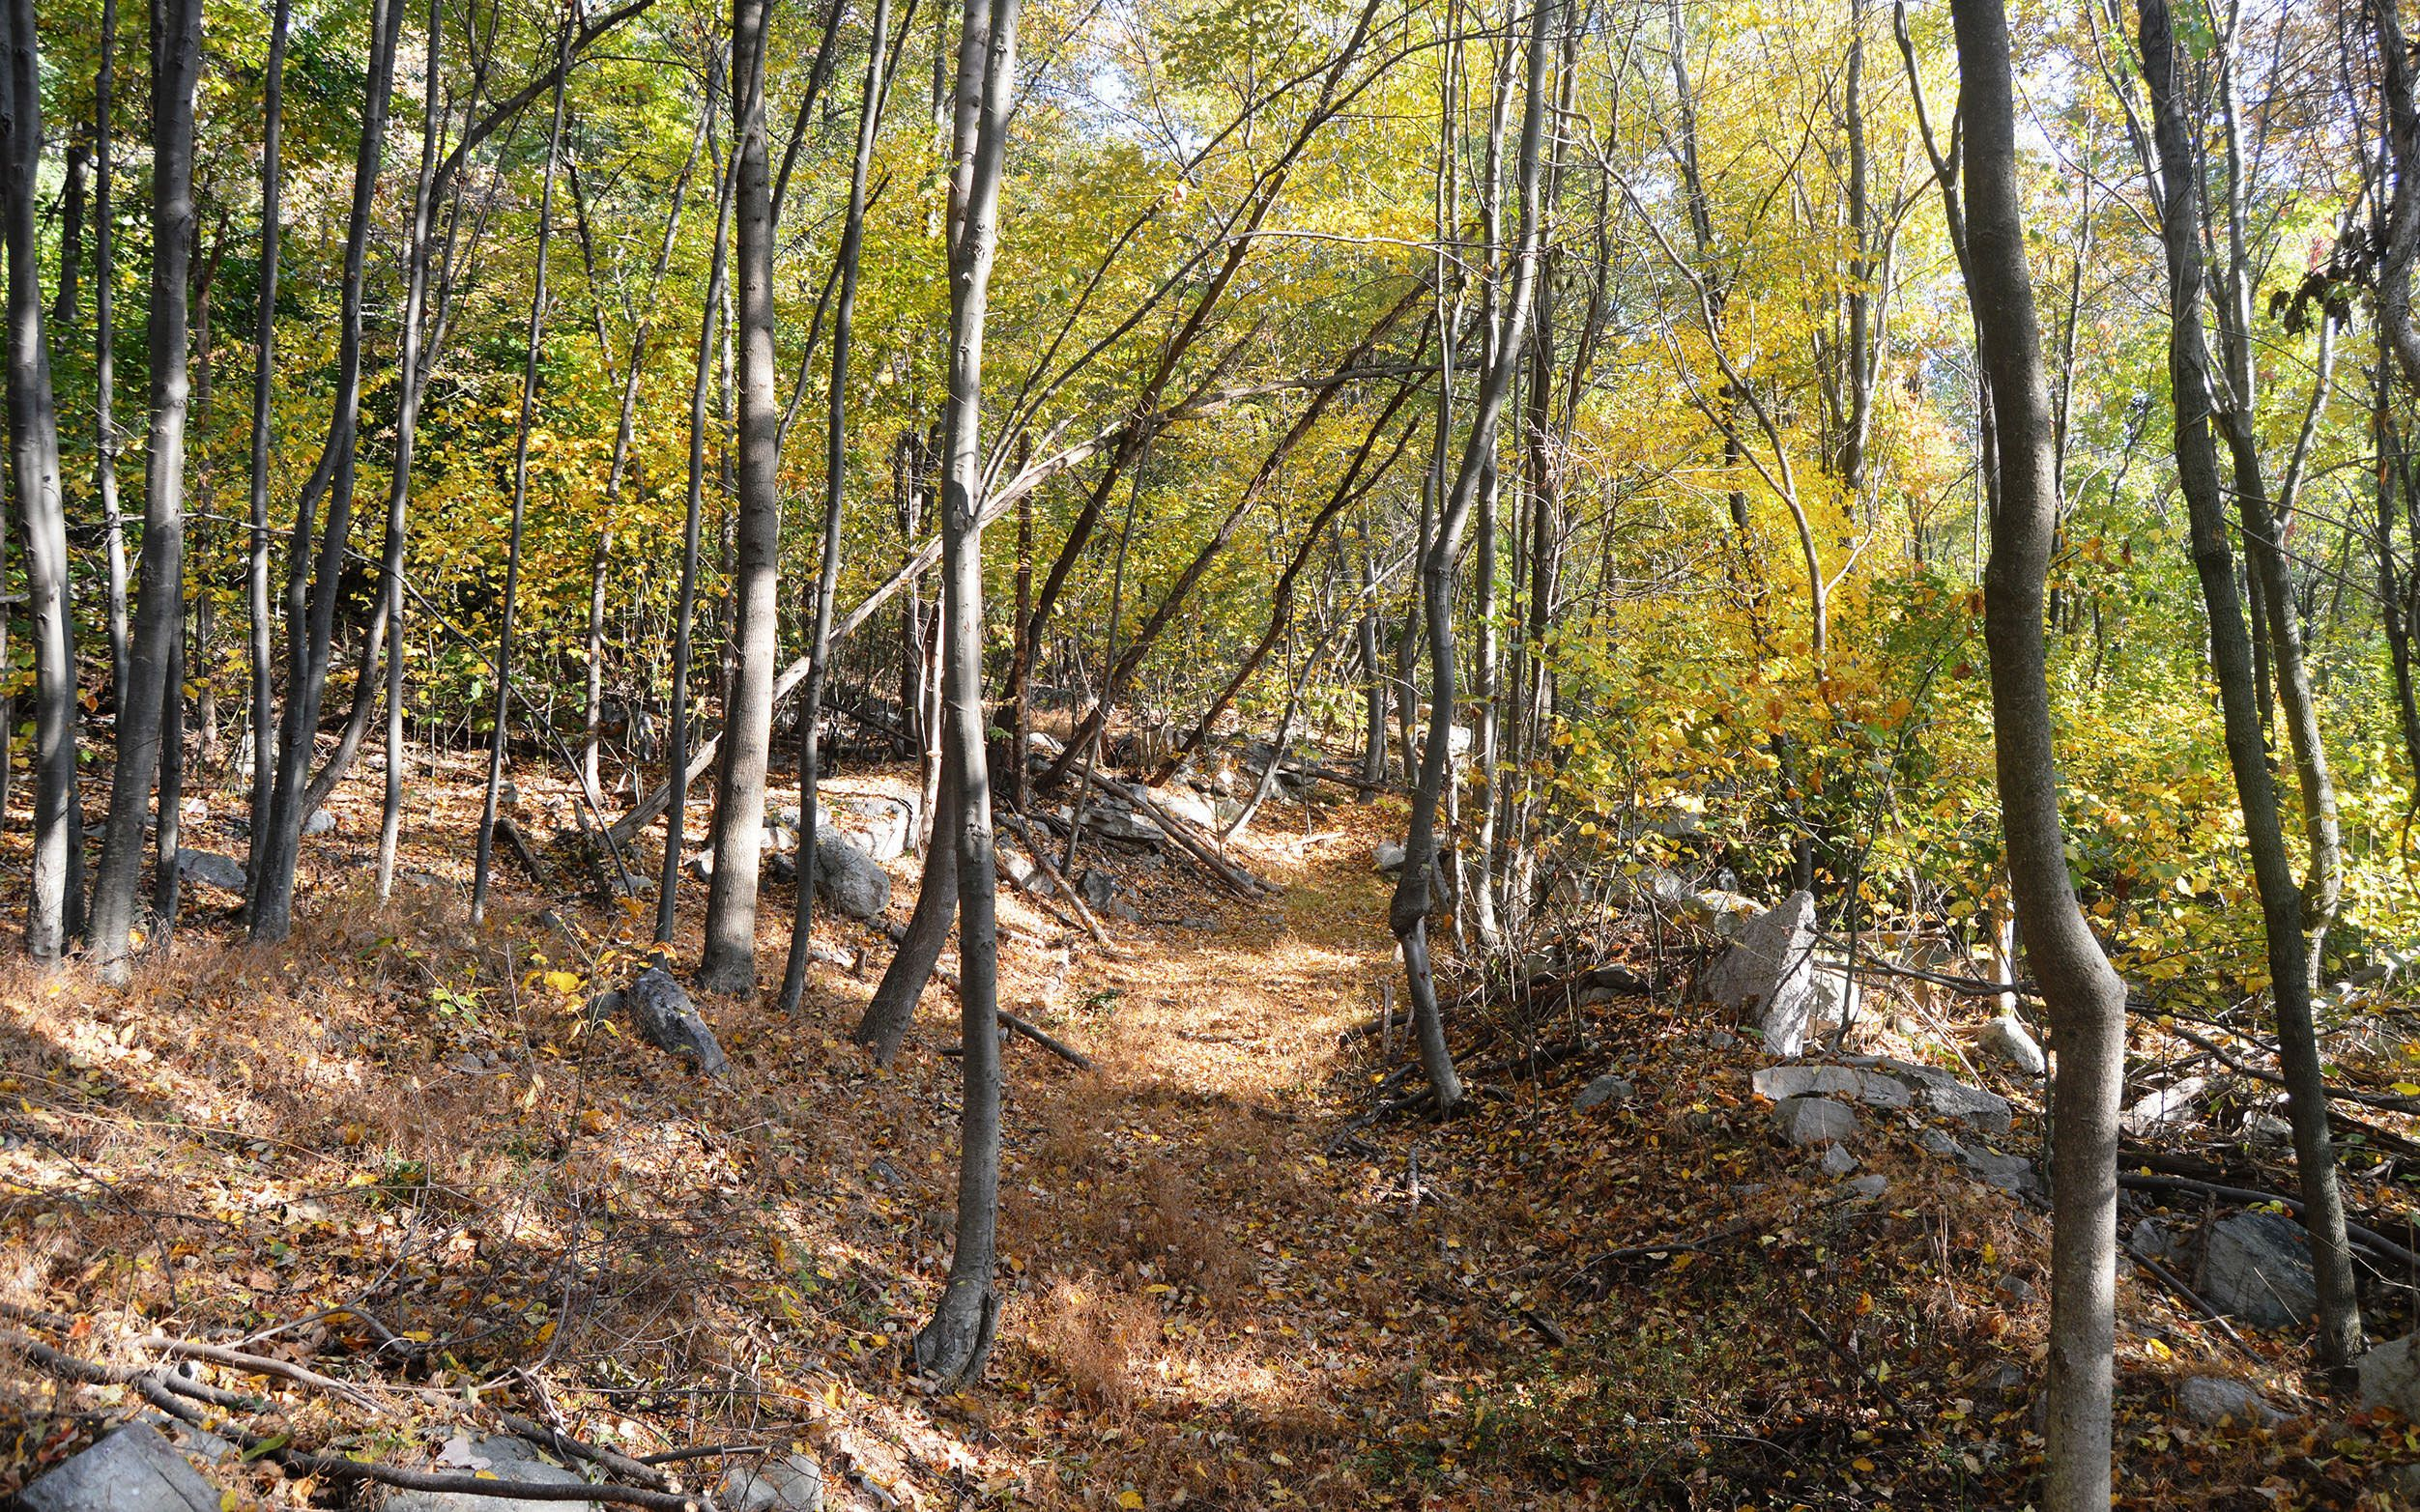 A path covered in leaves and pine needles curves through a forest. The leaves are just beginning to turn gold.